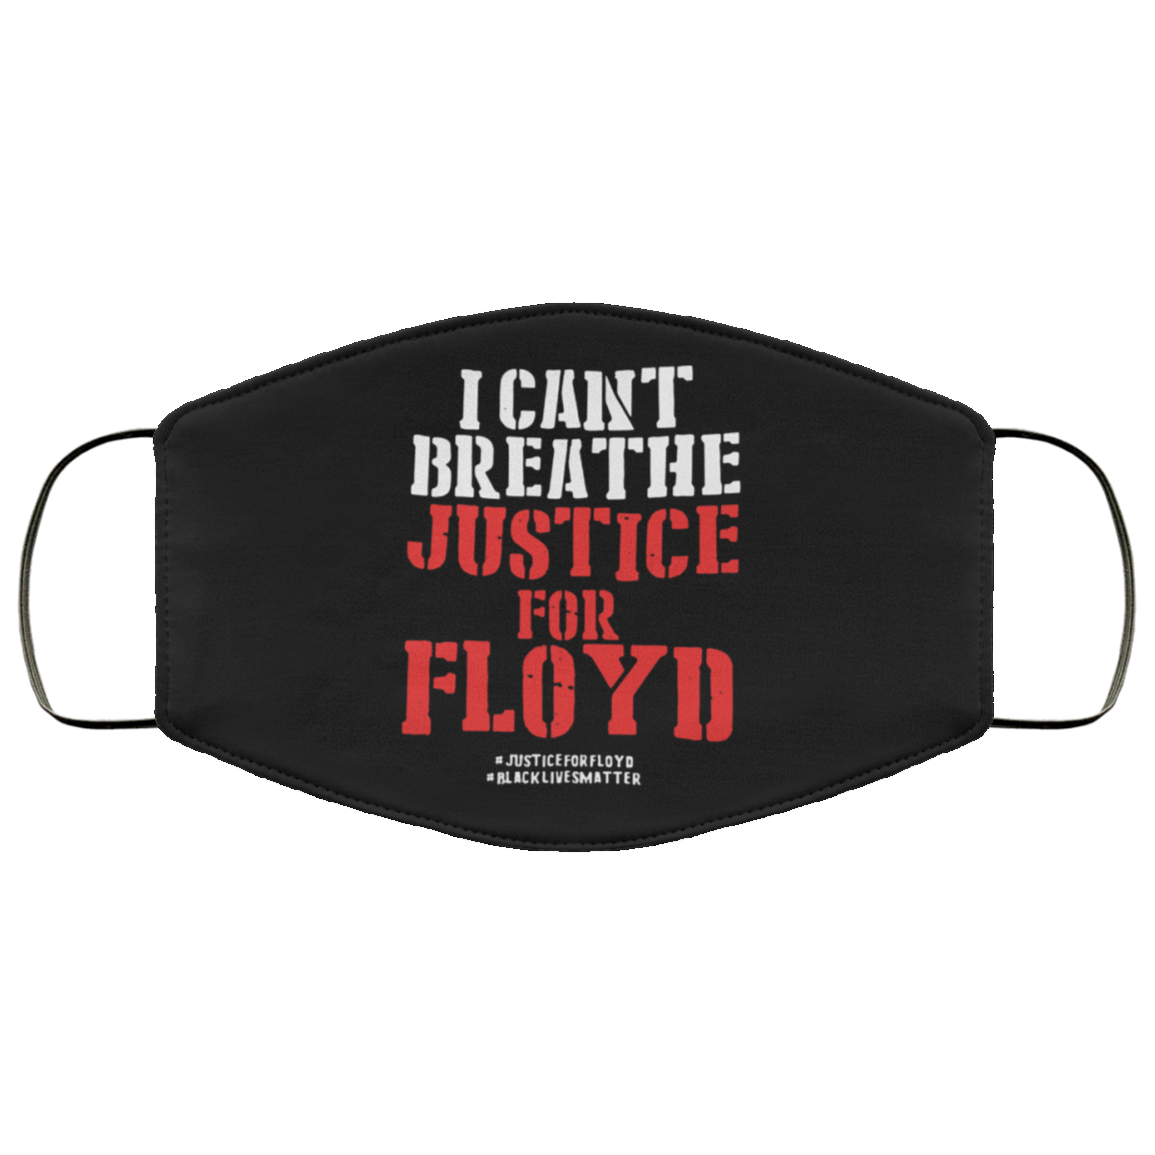 I Can't Breathe Just For Floyd Face Masks - Black Lives Matter Cloth Face Masks Protest